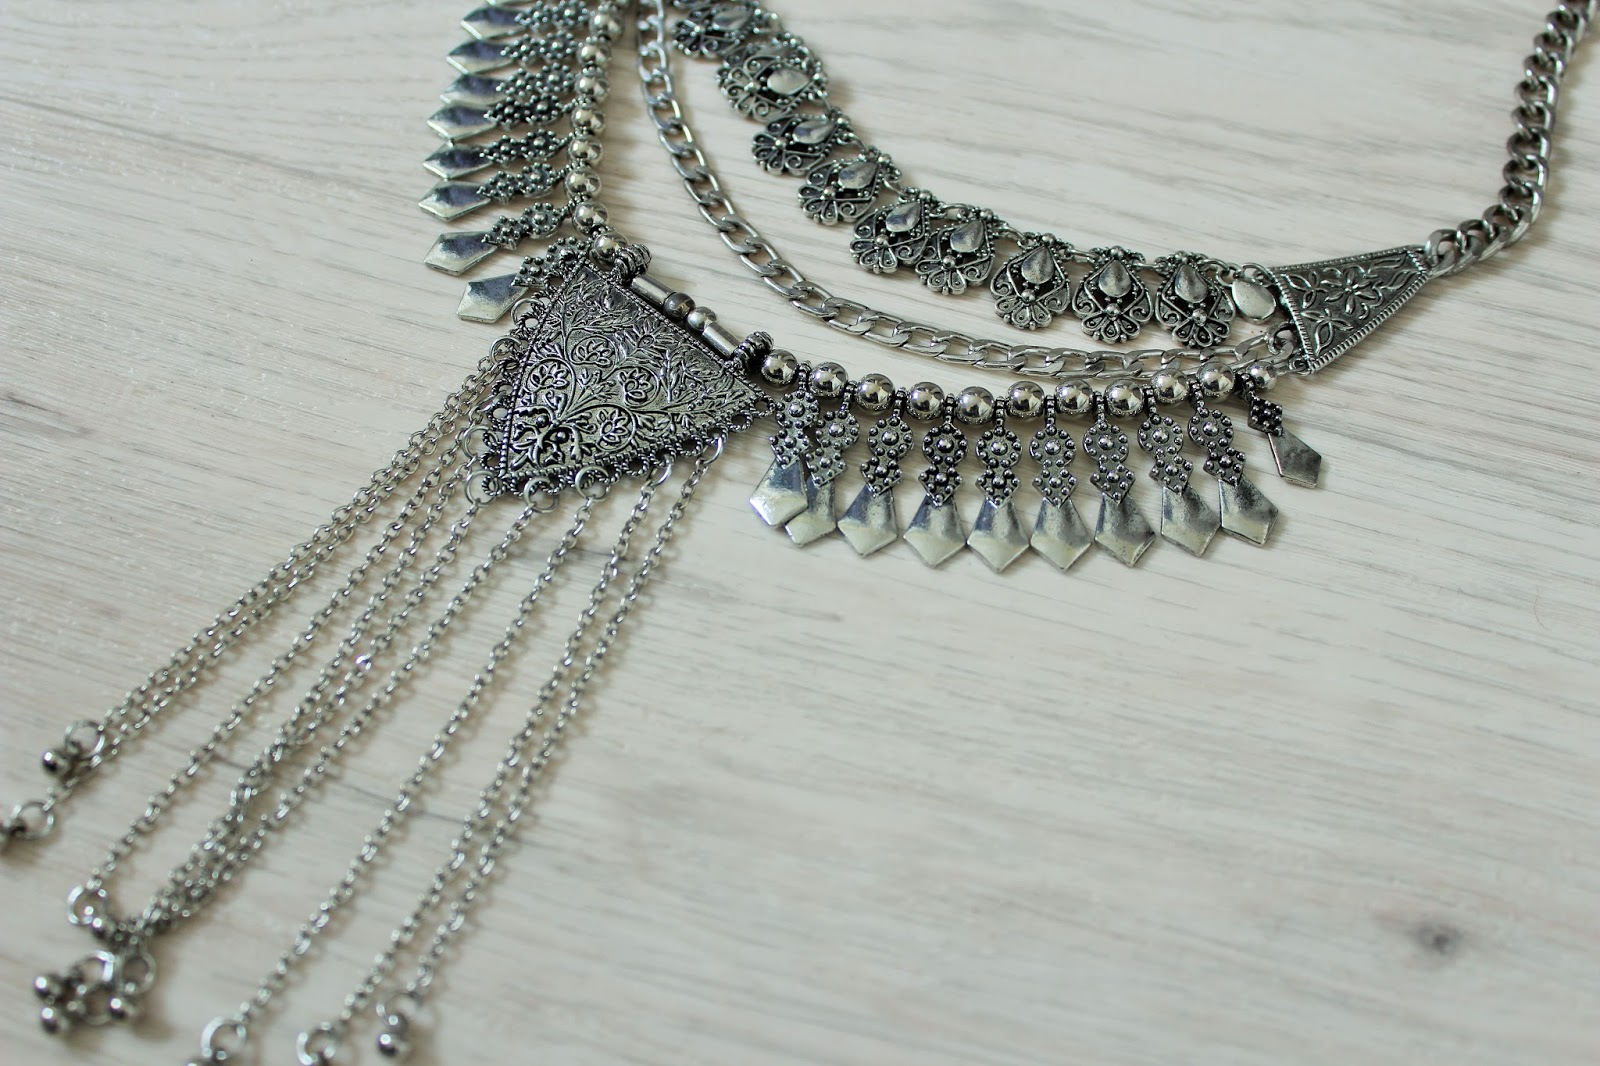 Statement necklace from Happiness Boutique